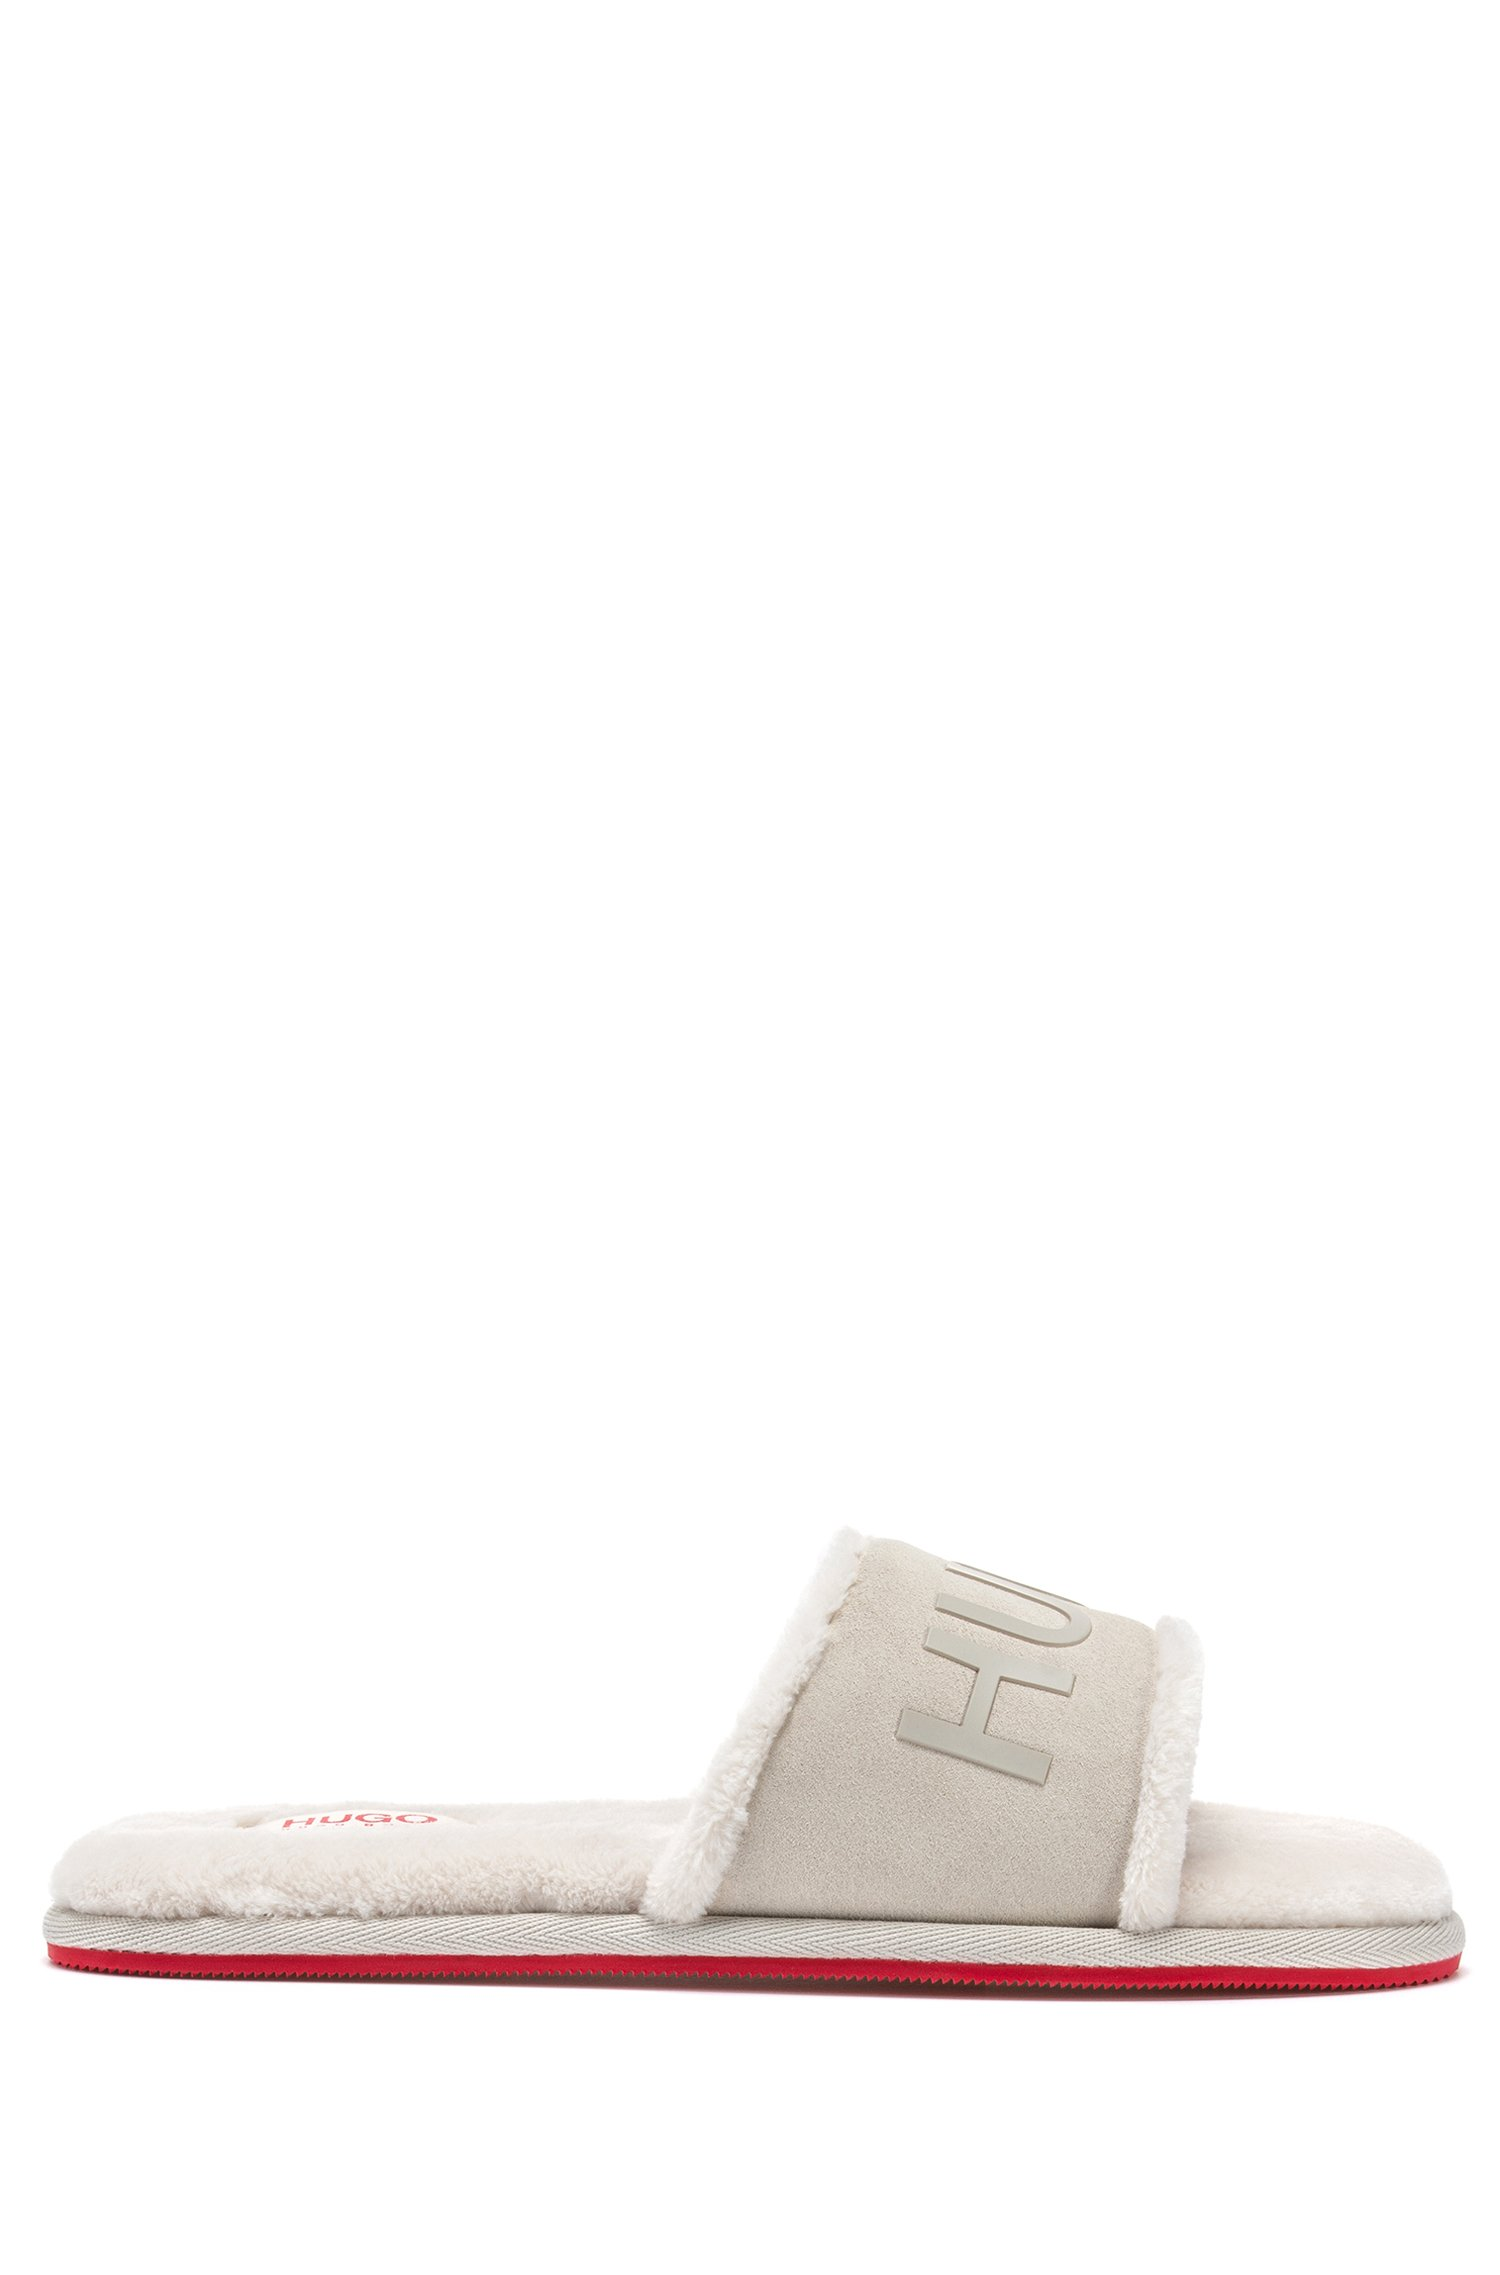 Slide-style logo slippers with split-leather uppers, White